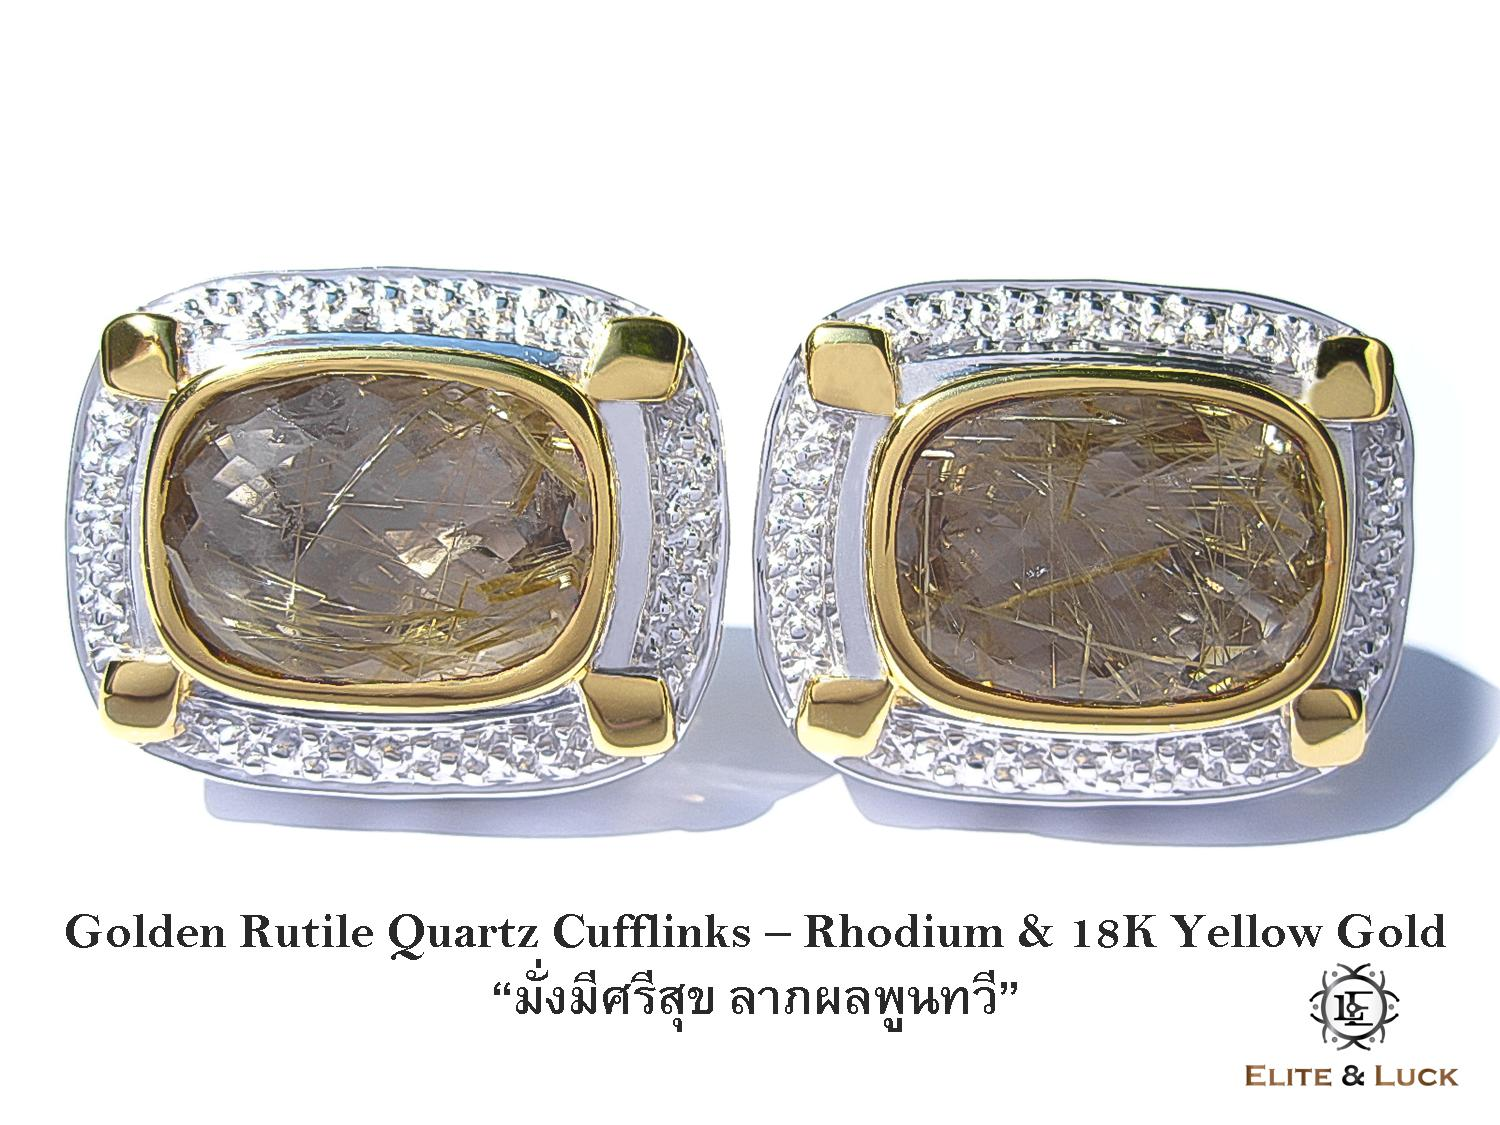 Golden Rutile Quartz Sterling Silver Cufflinks สี Rhodium & 18K Yellow Gold รุ่น Luxury